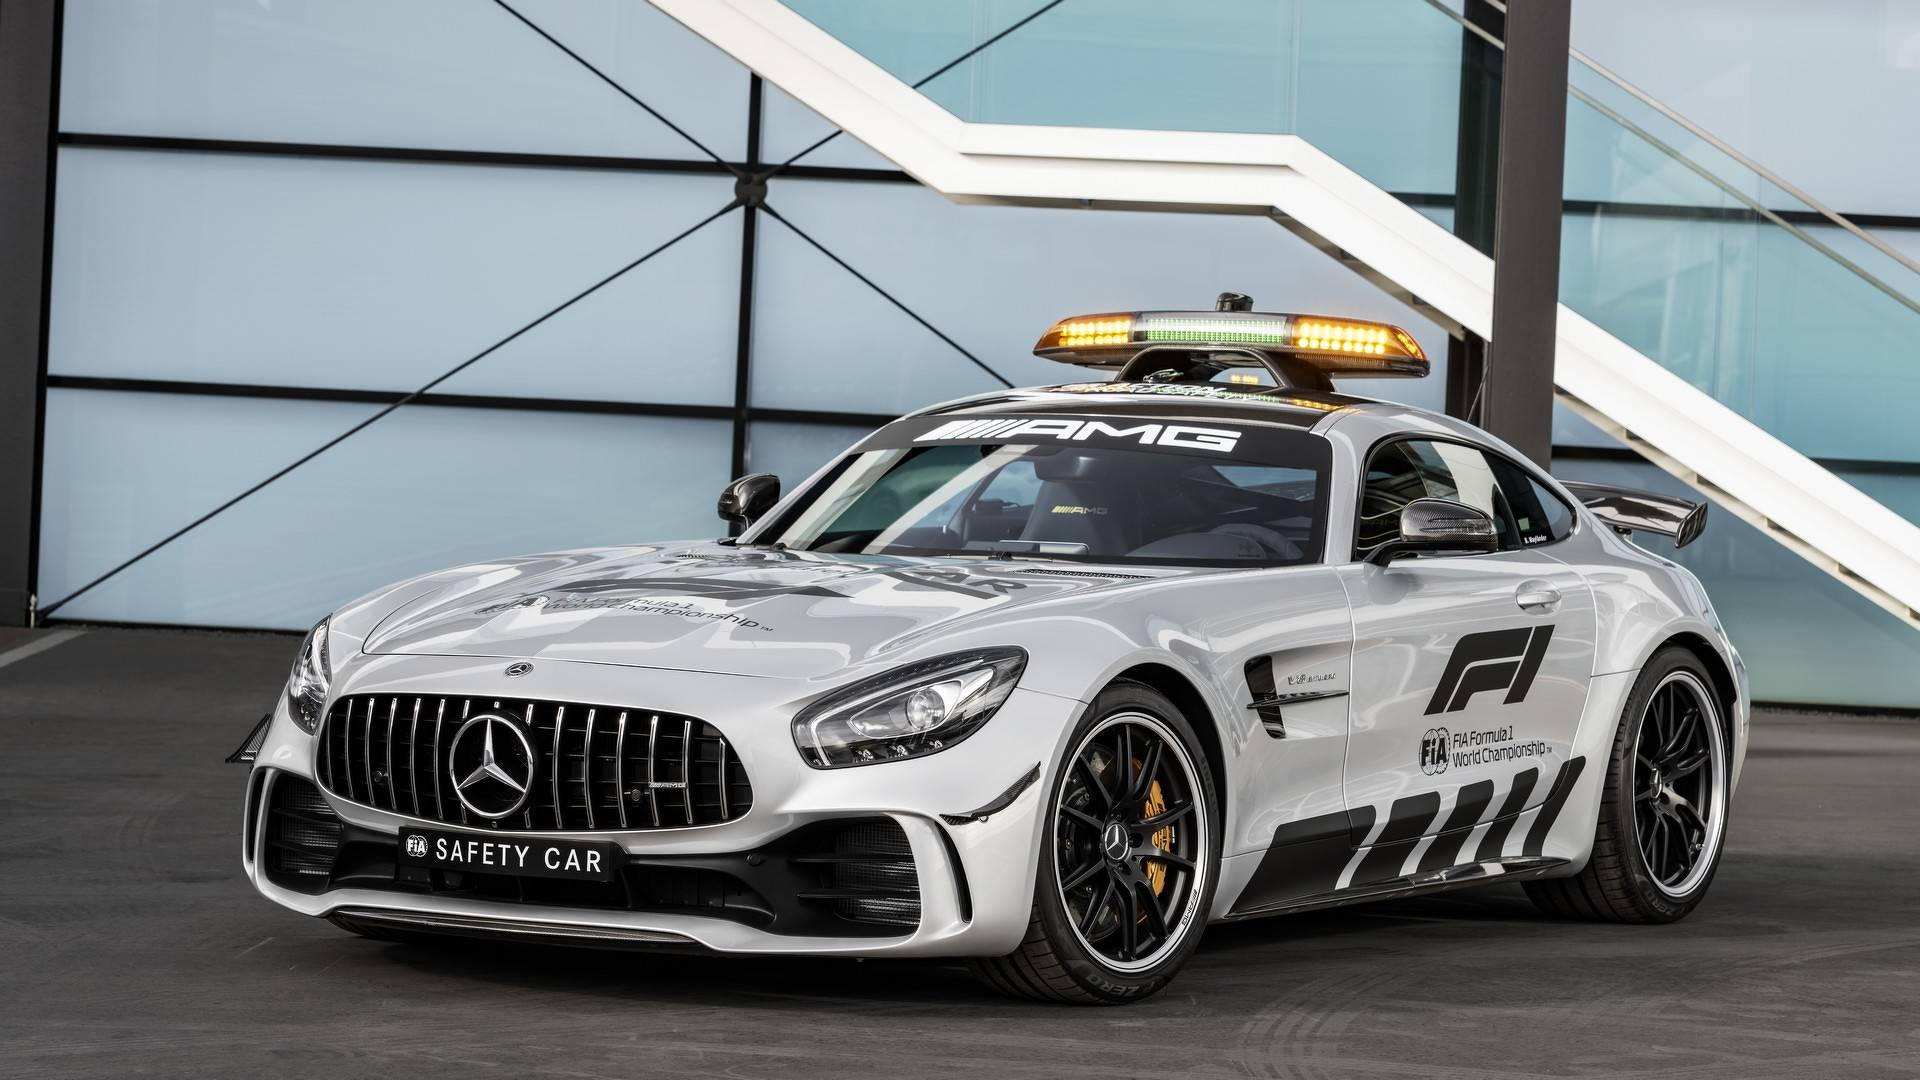 https://cdn.motor1.com/images/mgl/P813L/s1/2018-mercedes-amg-gt-r-formula-1-safety-car.jpg